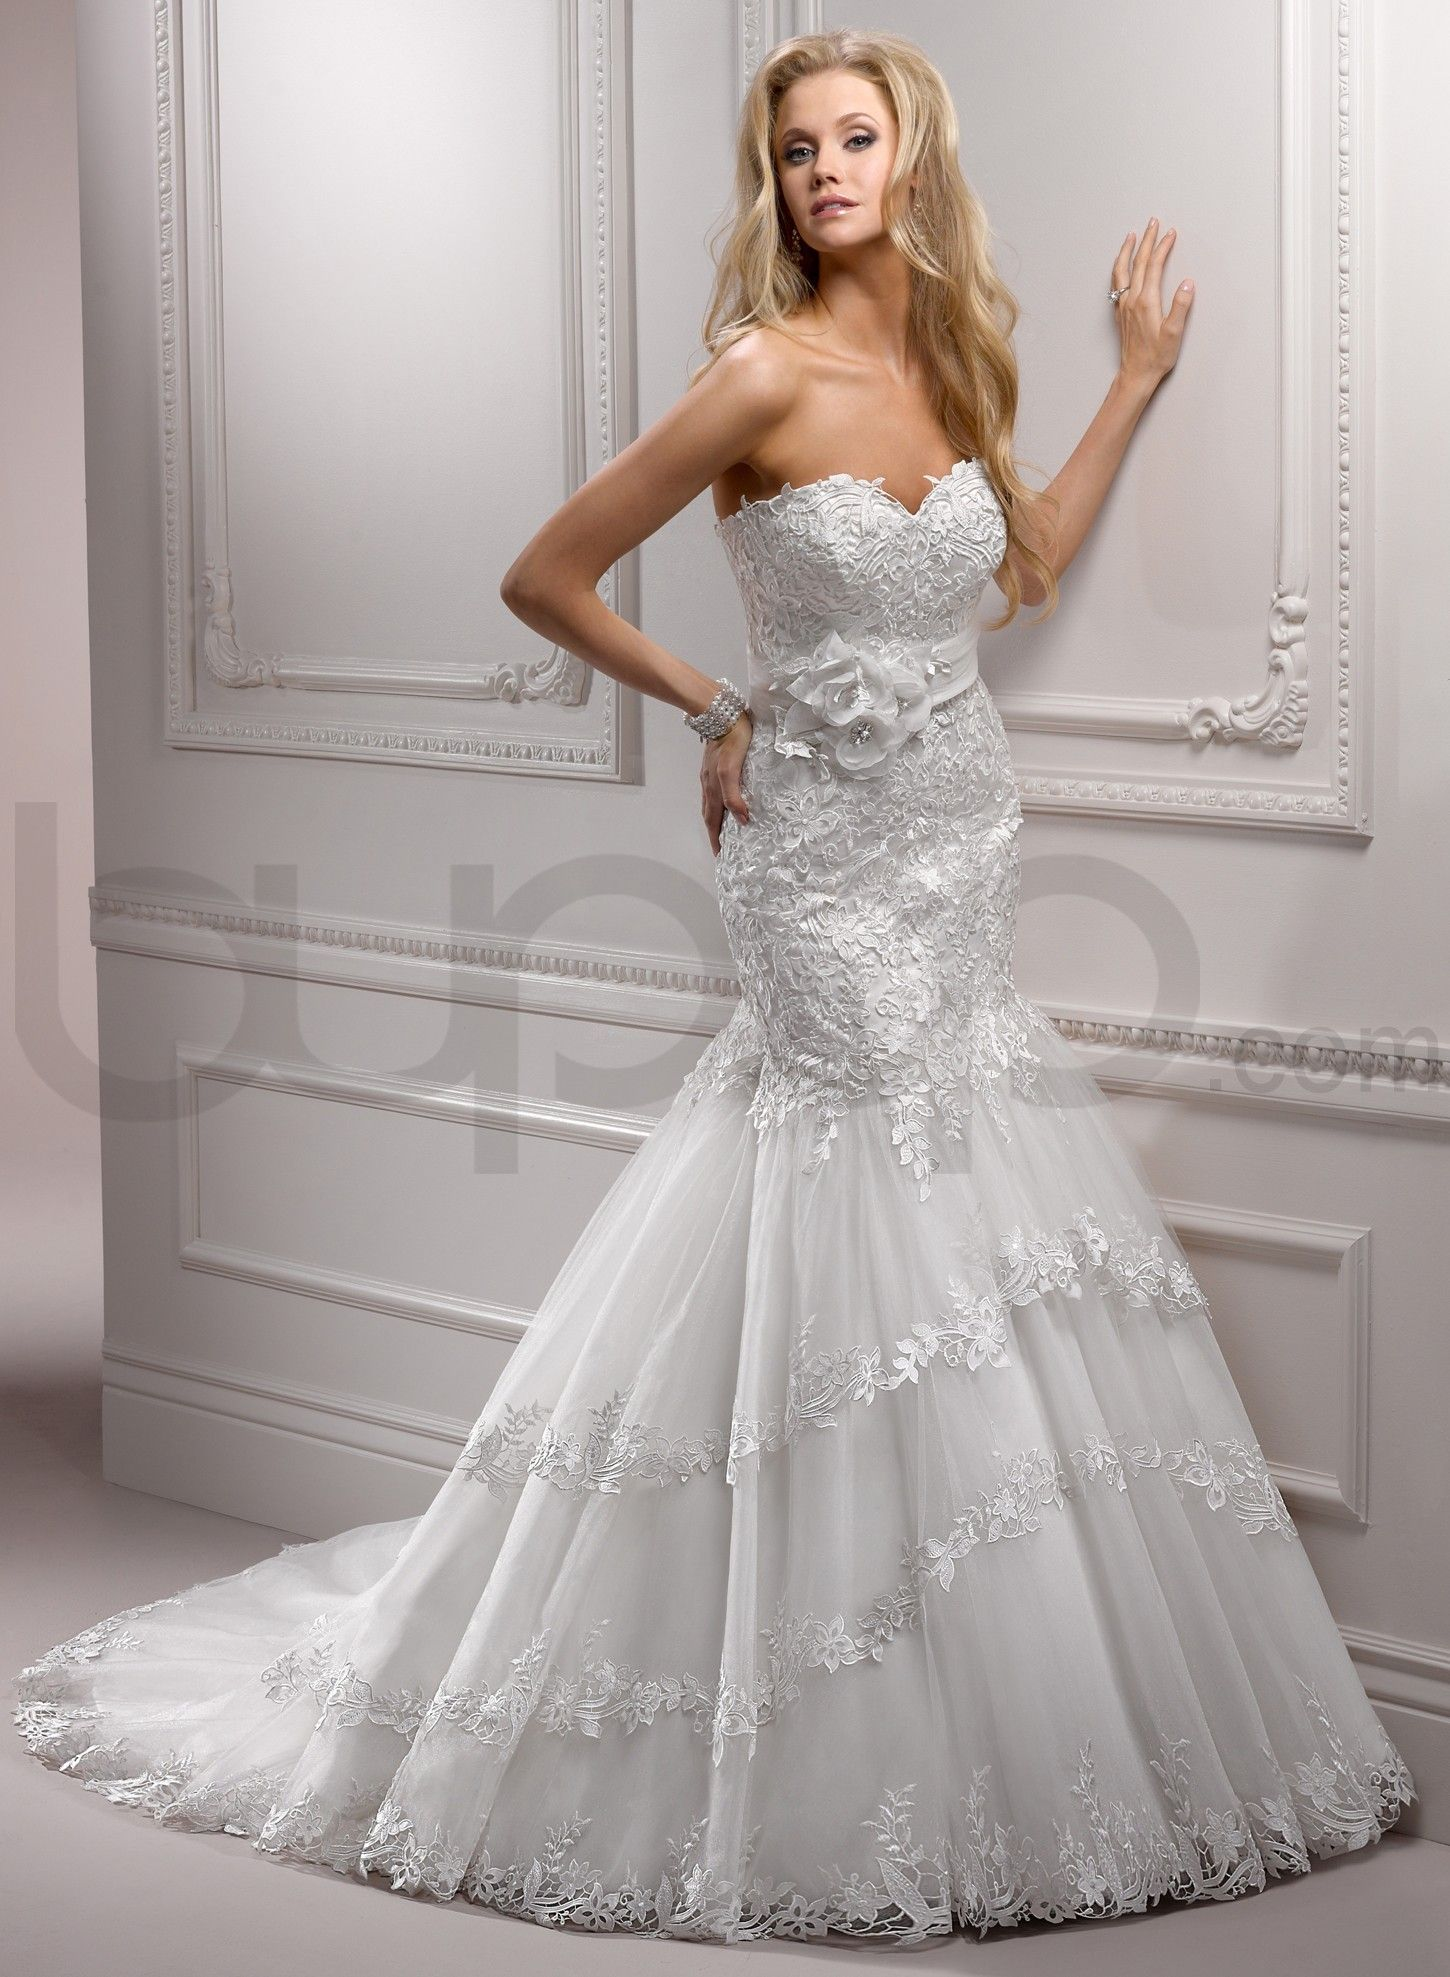 wedding-dresses-sweetheart-neckline-mermaid-style-with-bling- | Our ...